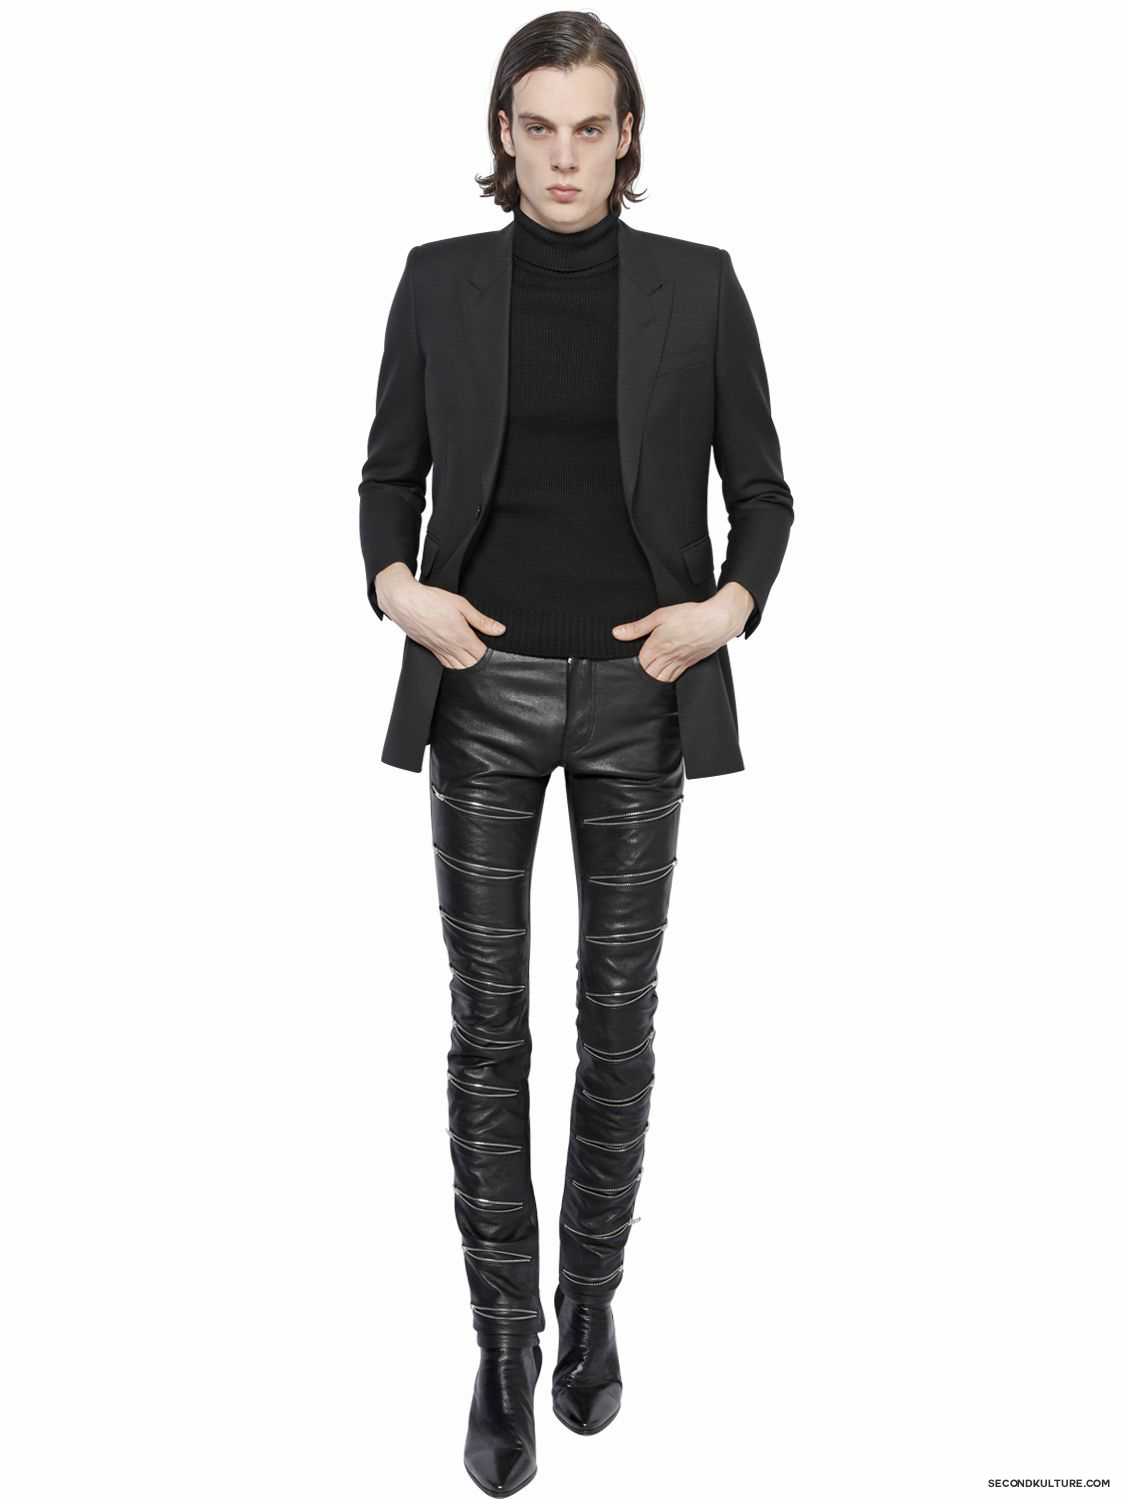 Saint-Laurent-15cm-Black-Multi-Zipped-Nappa-Leather-Pants-Fall-Winter-2015-2